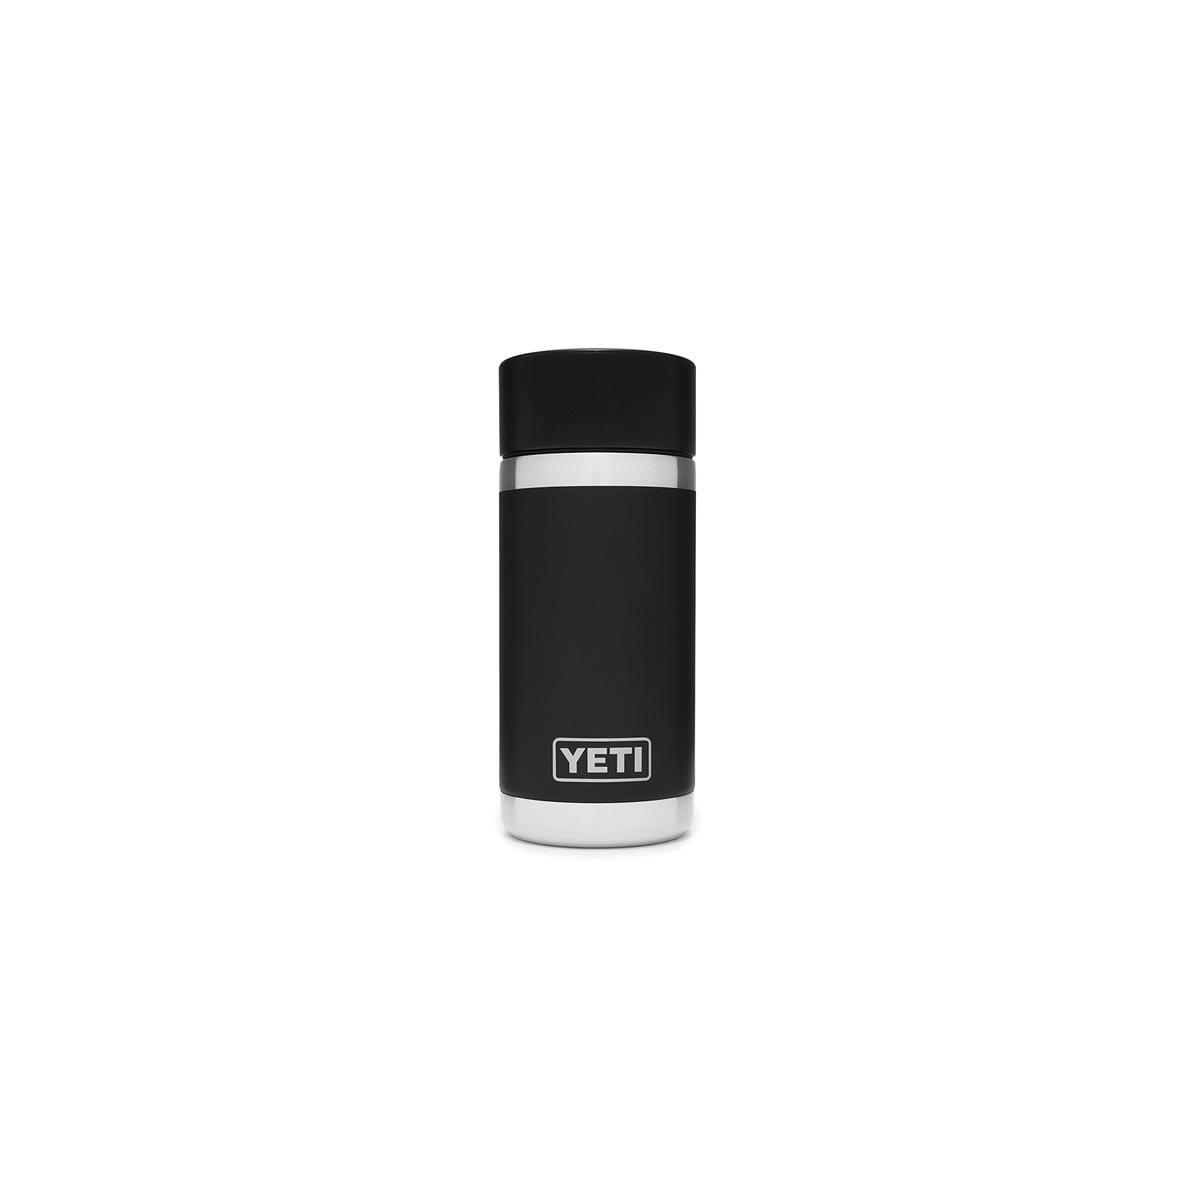 Picture of YETI Rambler 21071050006 Bottle with Hotshot Cap, 12 oz Capacity, Stainless Steel, Black